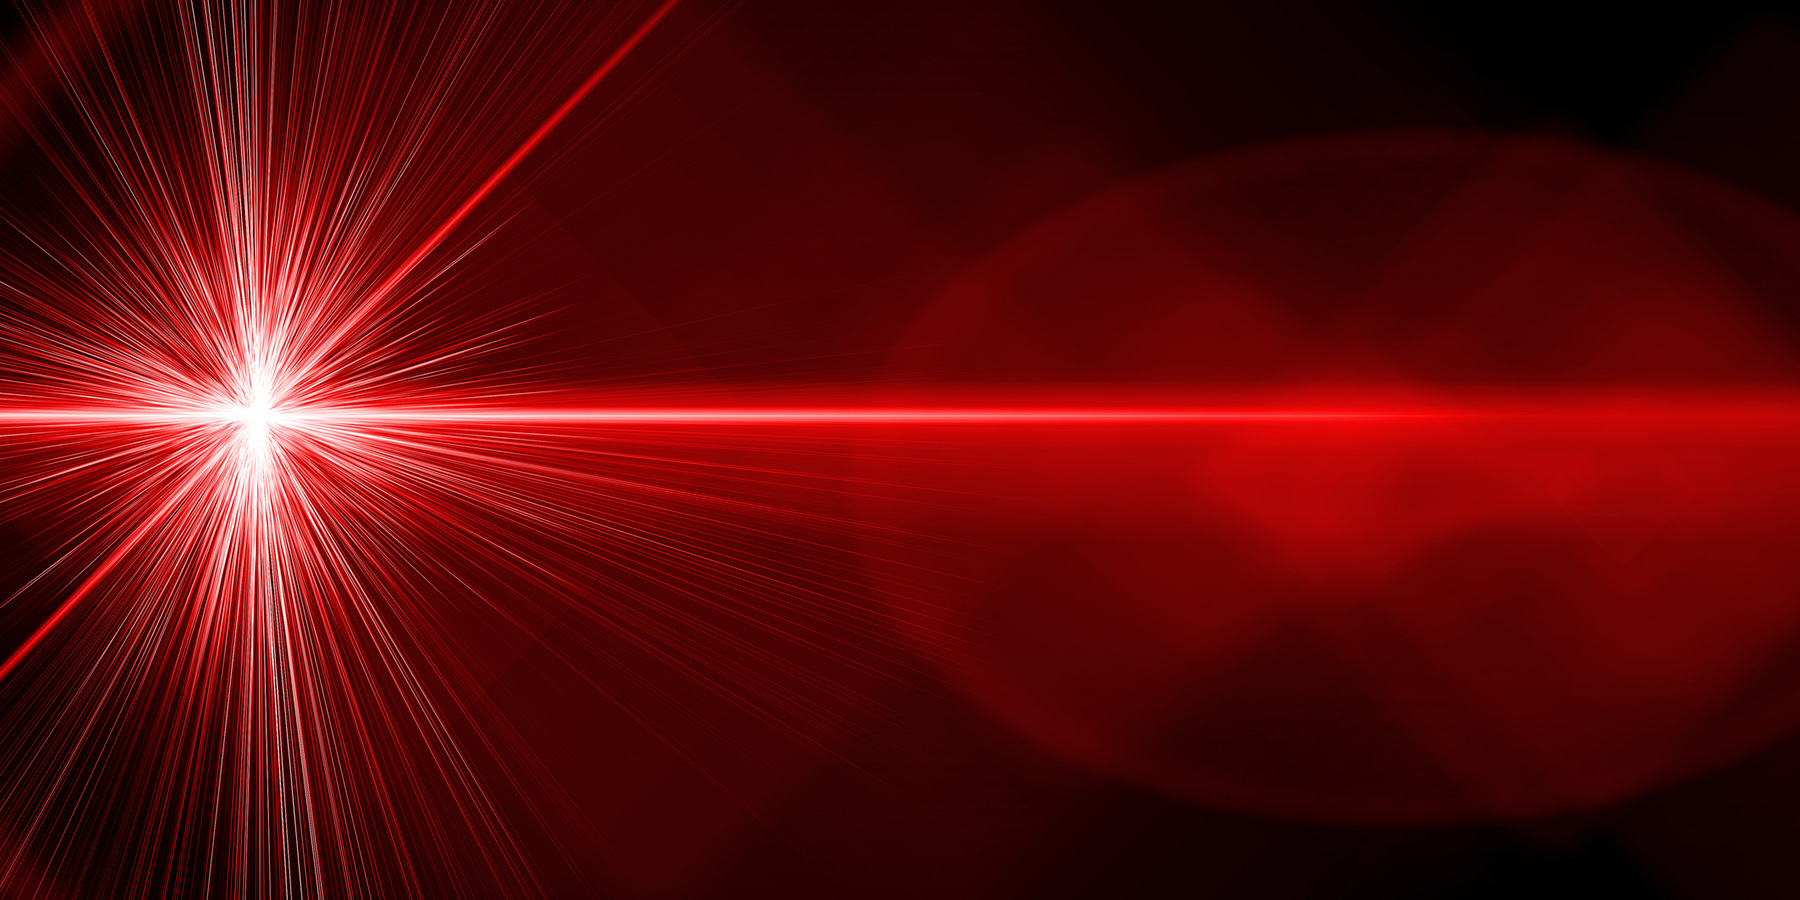 New Method Measures Super-Fast, Free Electron Laser Pulses